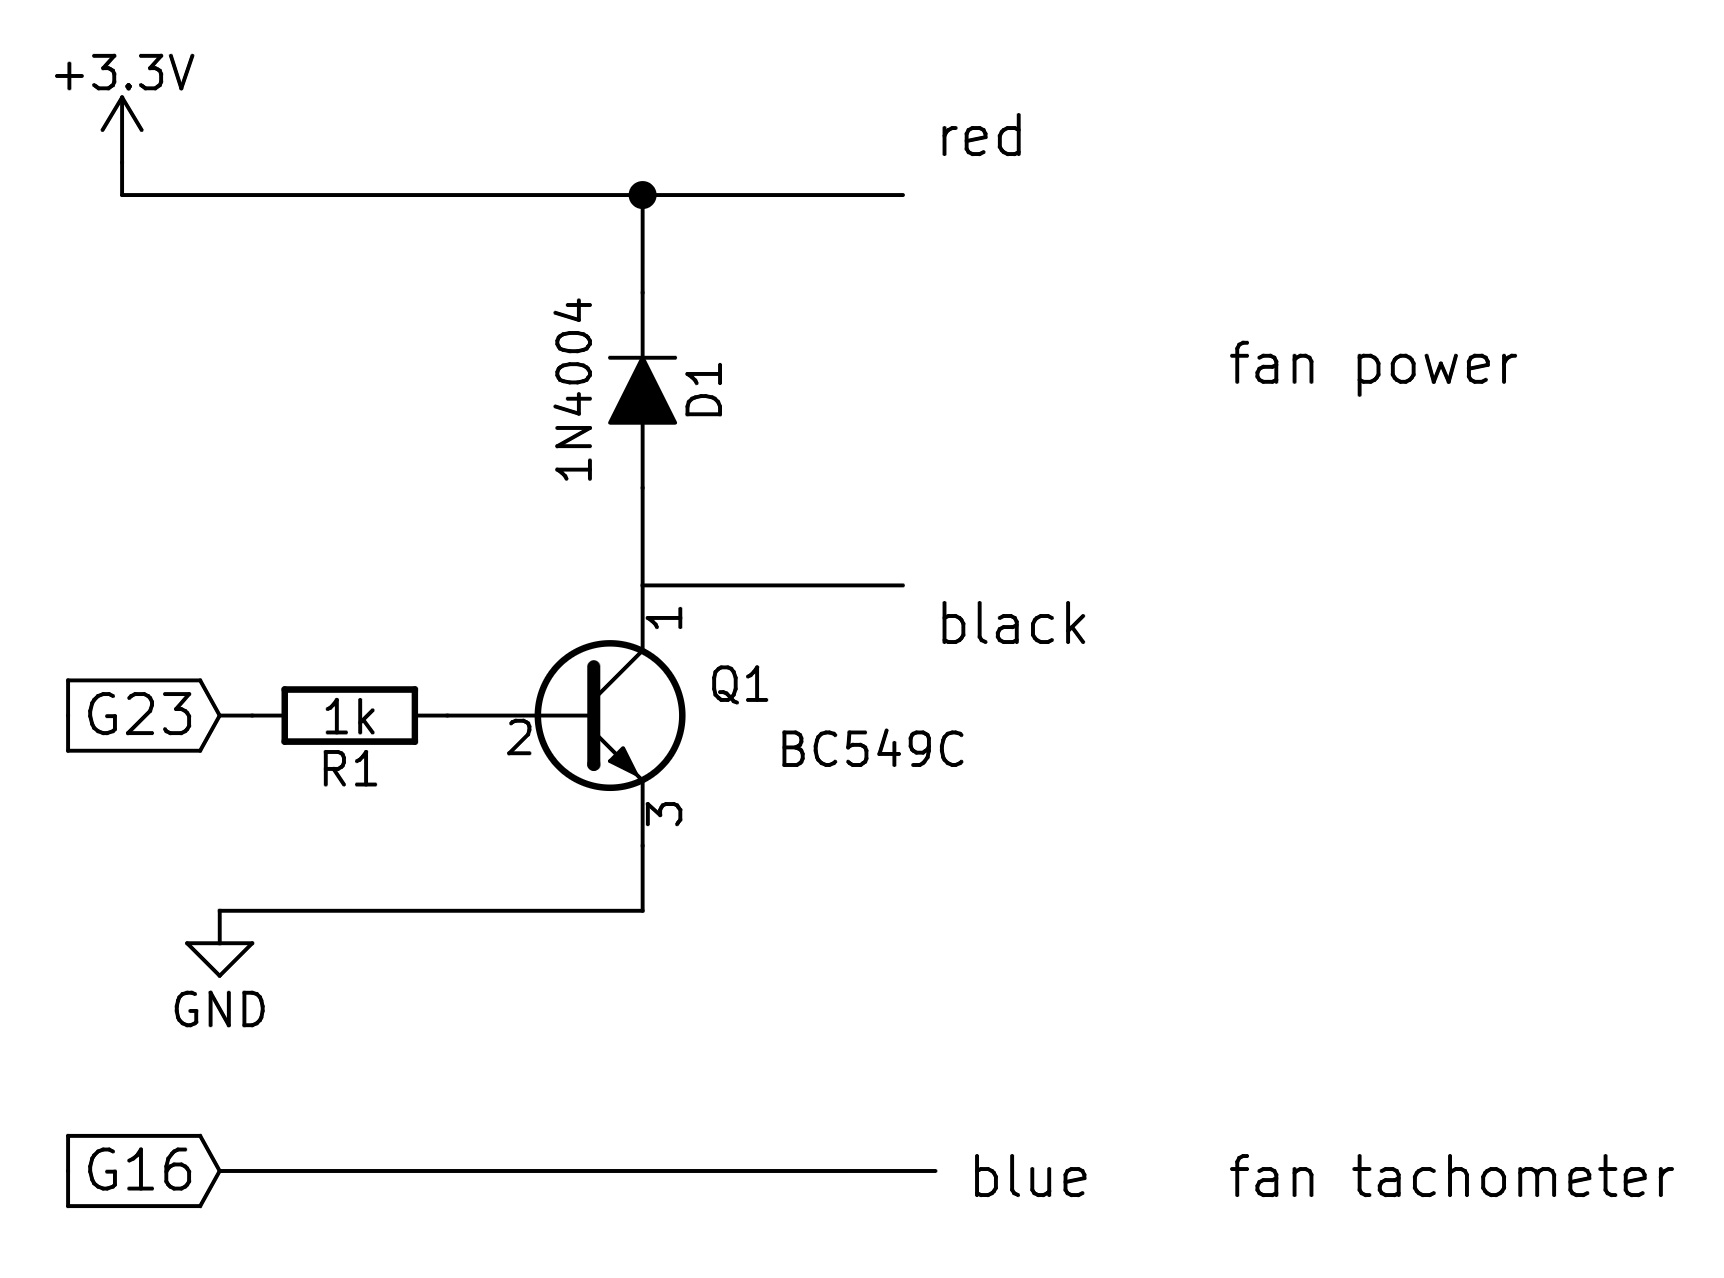 wiring 3w pwm fan wire diagram diagrams for wiring bathroom fan and lights  at soozxer.org